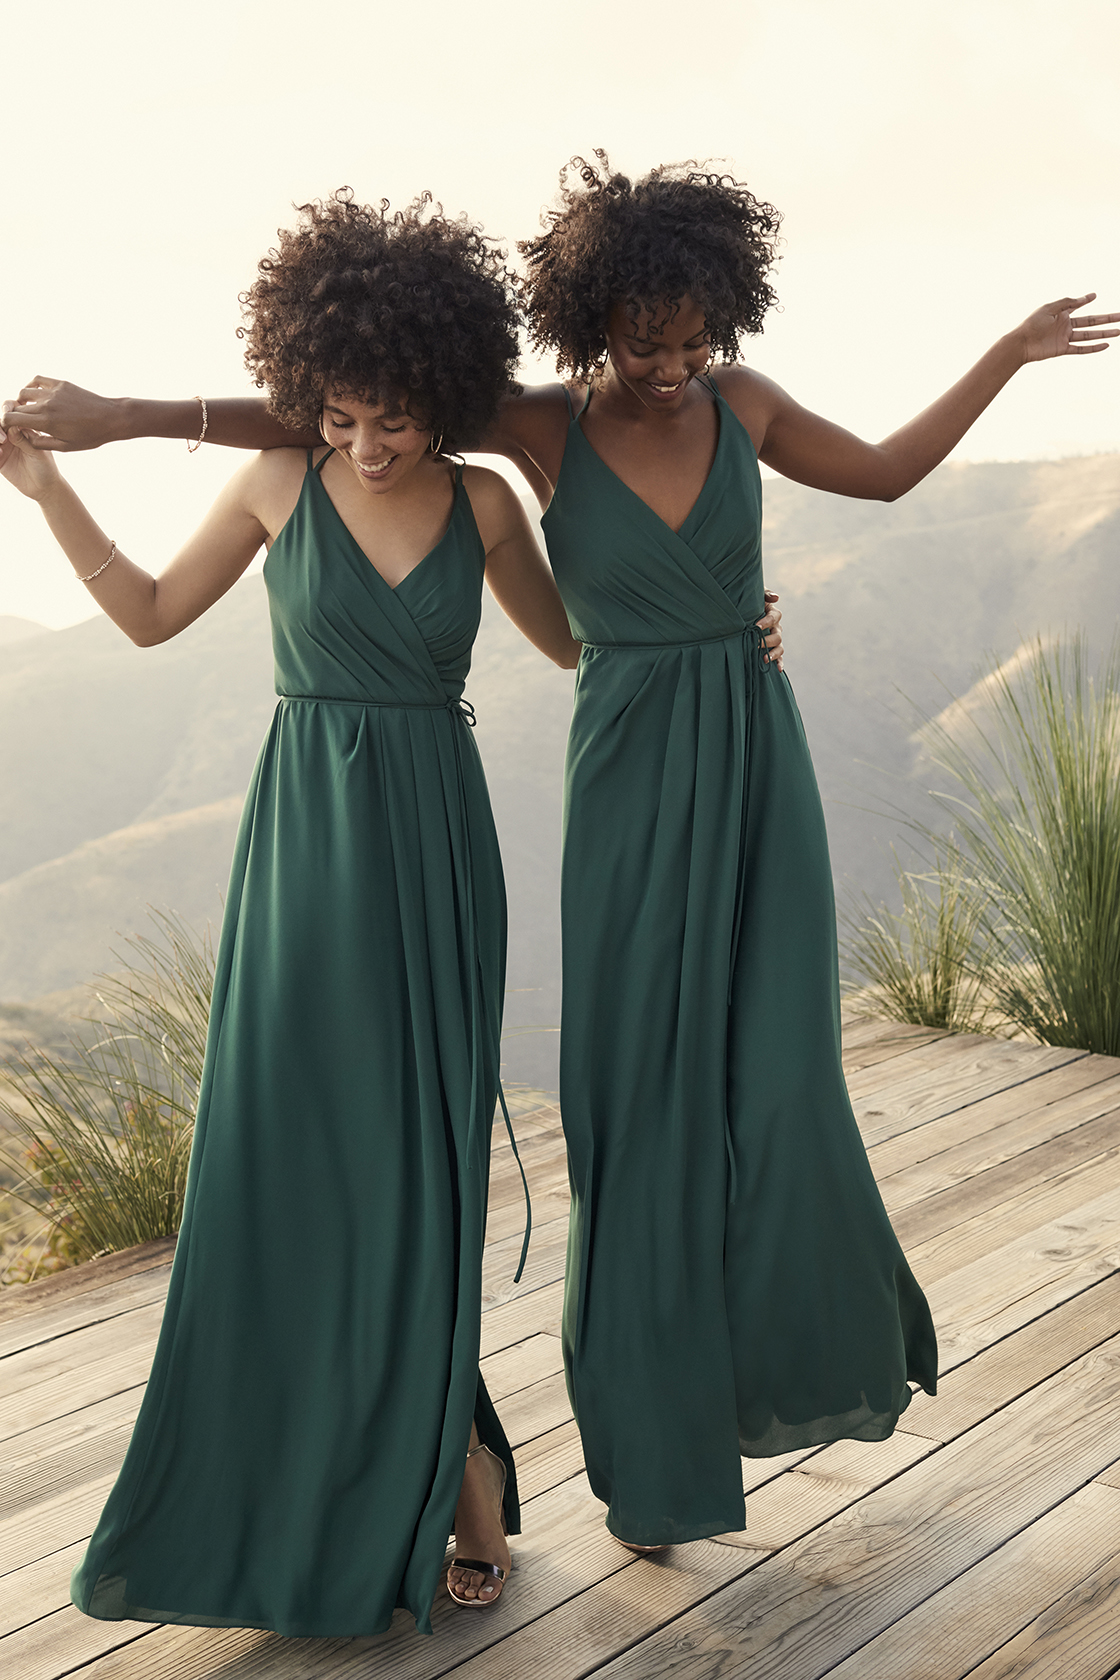 black bridesmaids with natural hairstyles wearing forest green spaghetti strap halter bridesmaid dresses from david's bridal